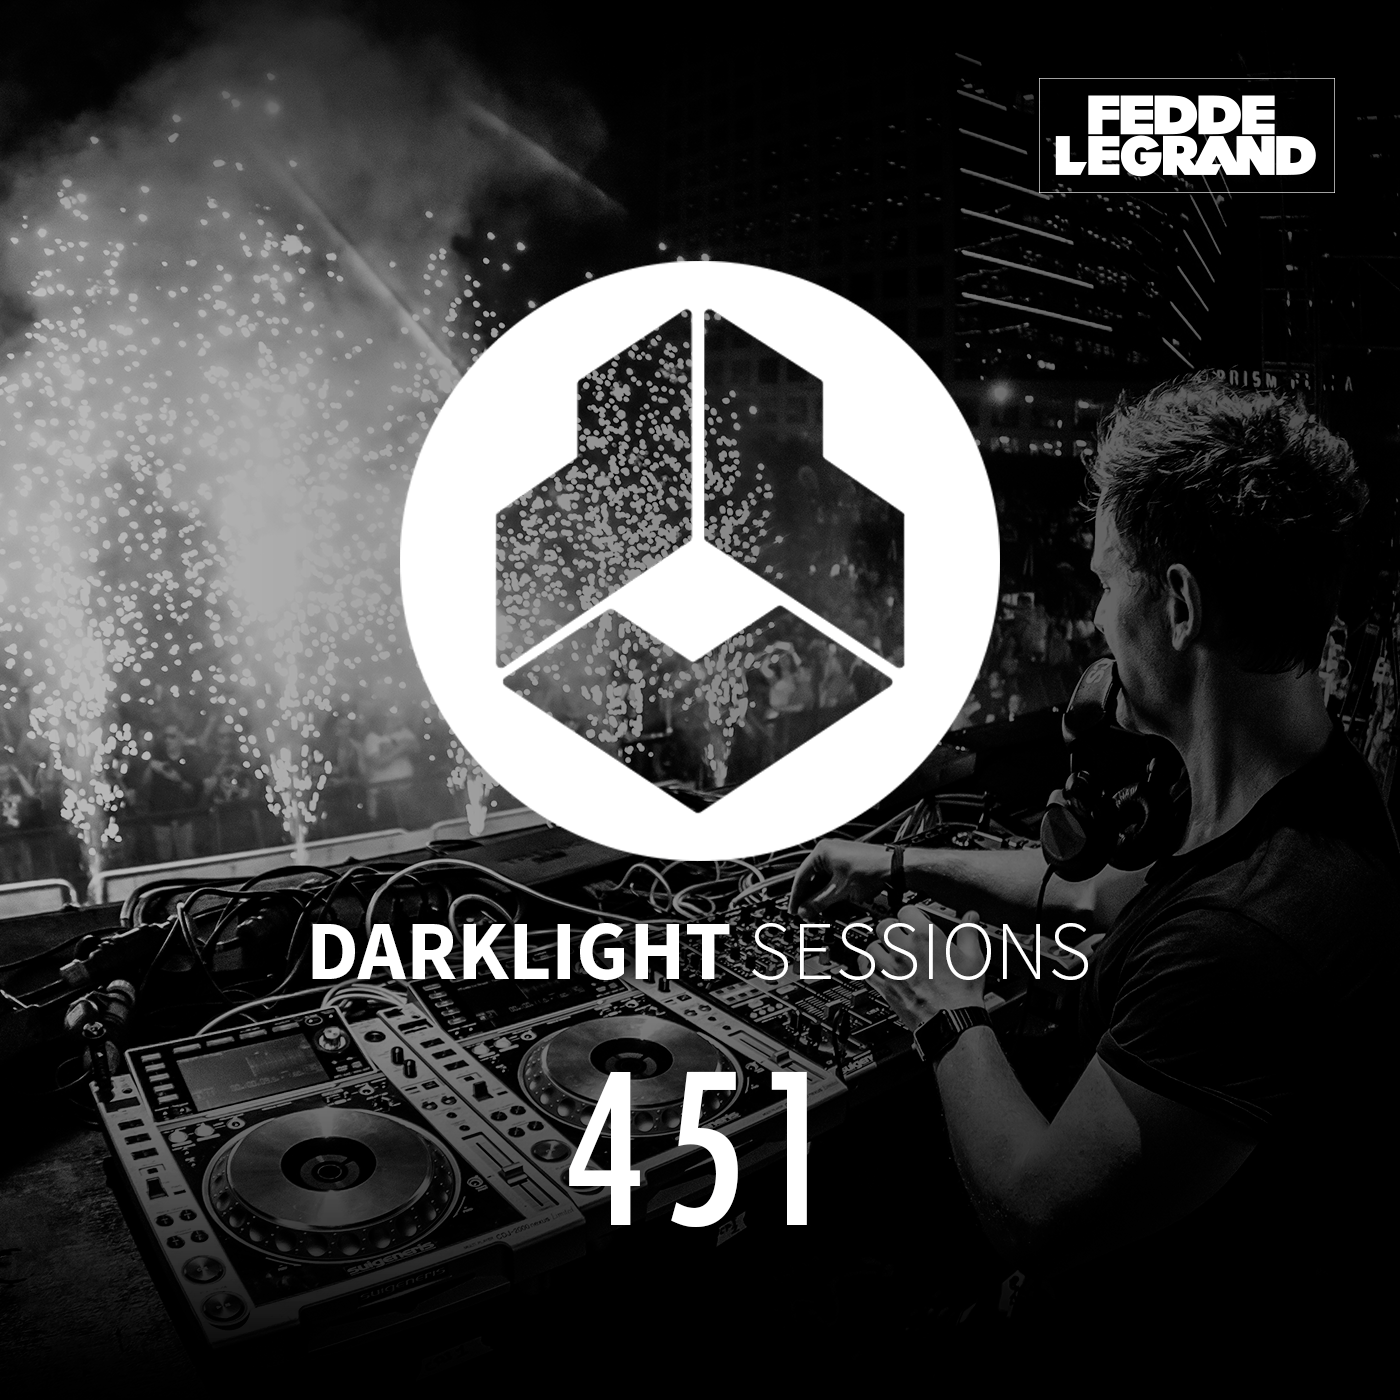 Darklight Sessions 451